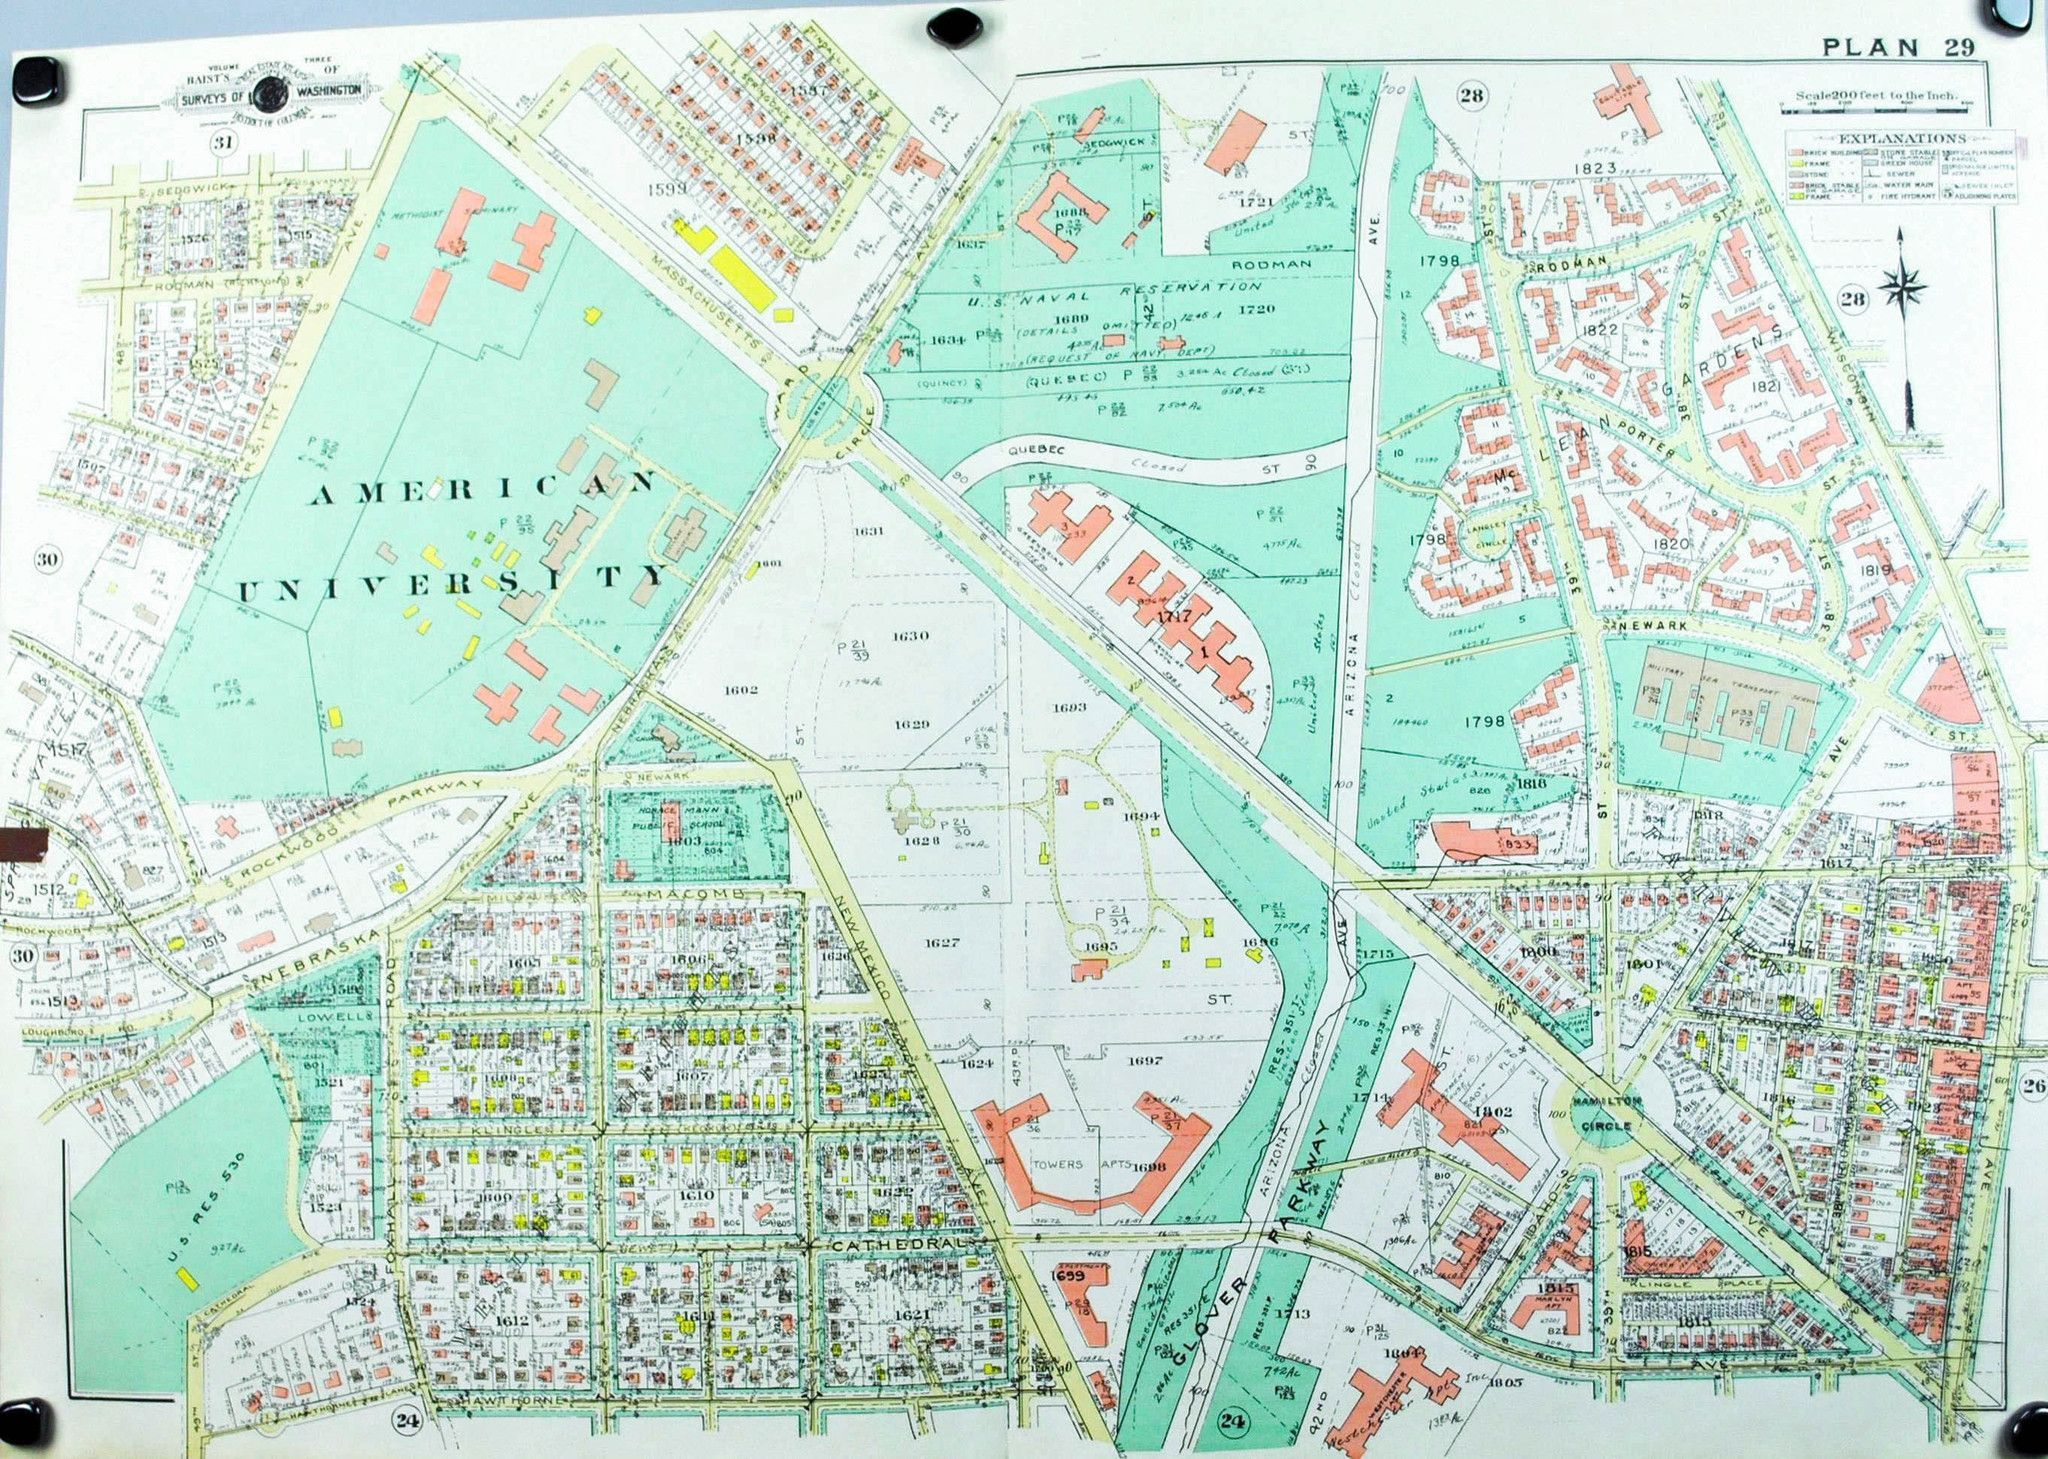 1960 Washington DC Plan 29 City maps and Products